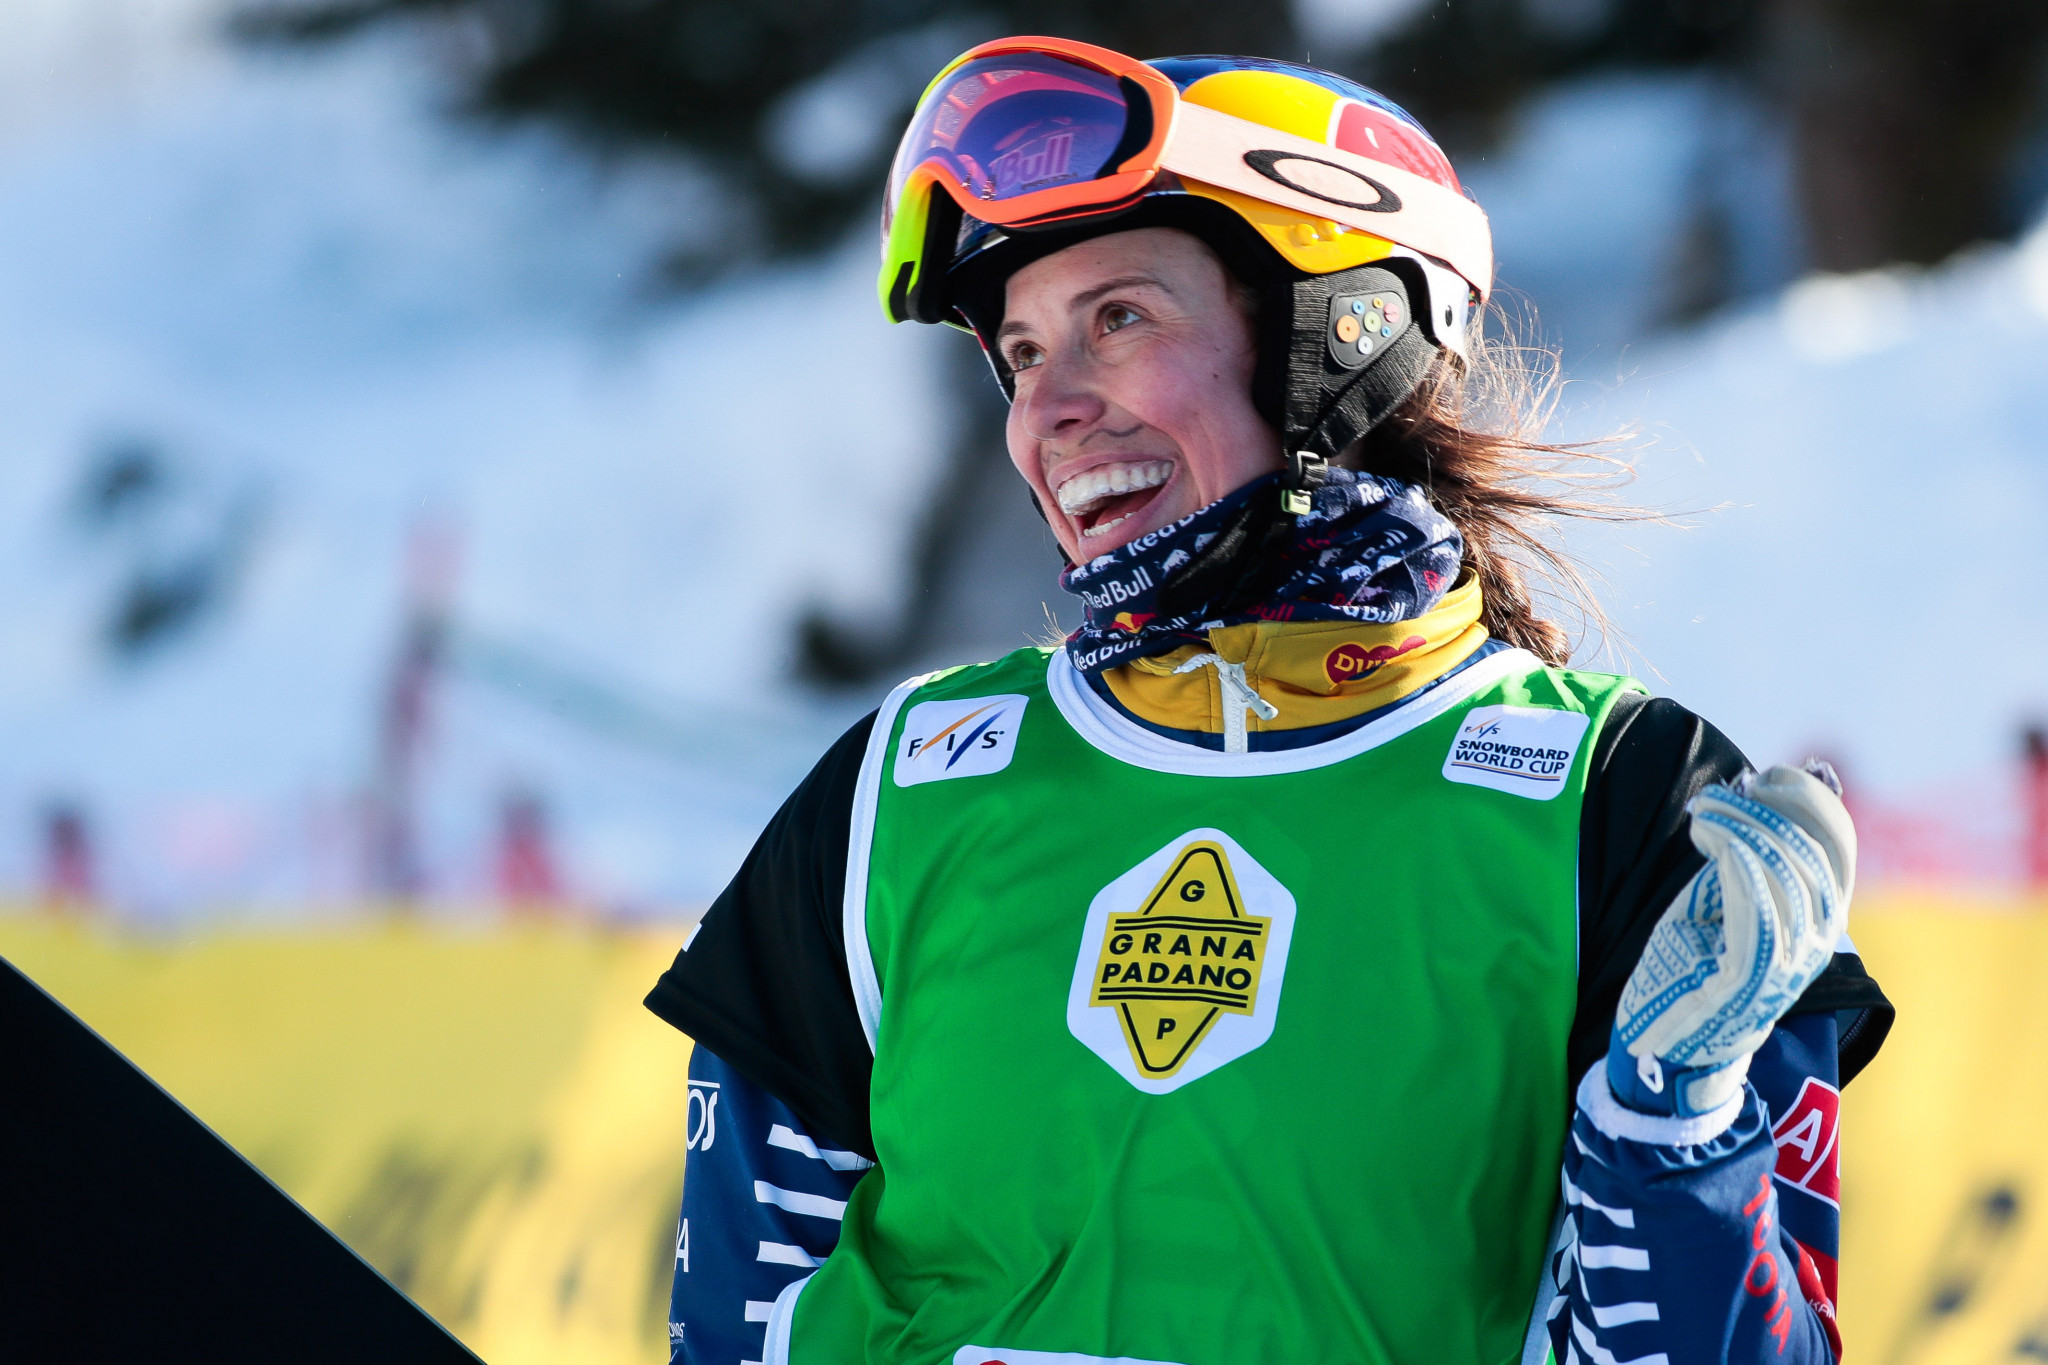 Samková and Surget star in qualifying at Snowboard Cross World Cup in Bakuriani